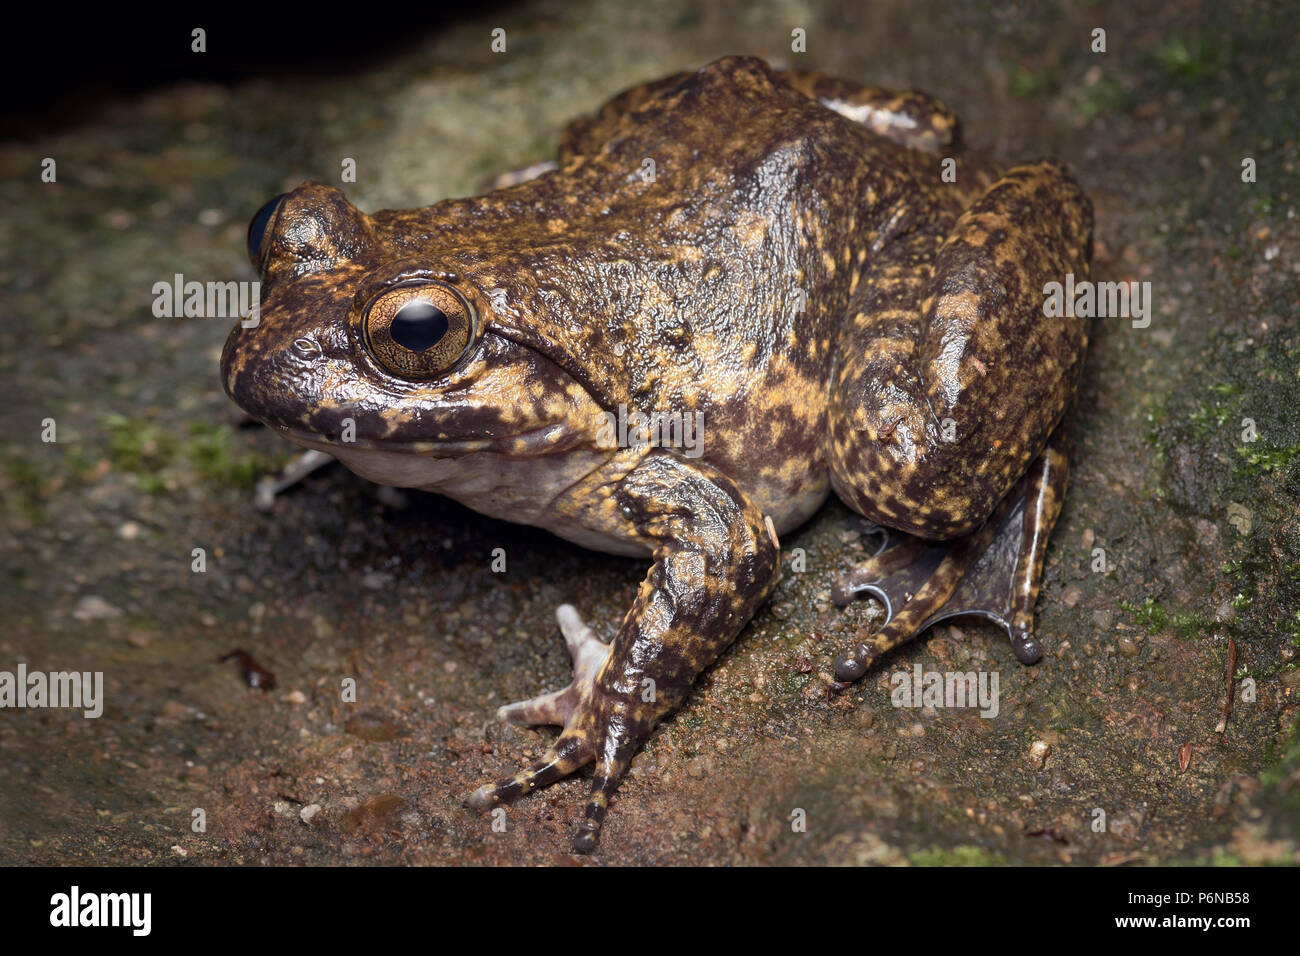 Giant spiny frog Paa spinosa - Stock Image